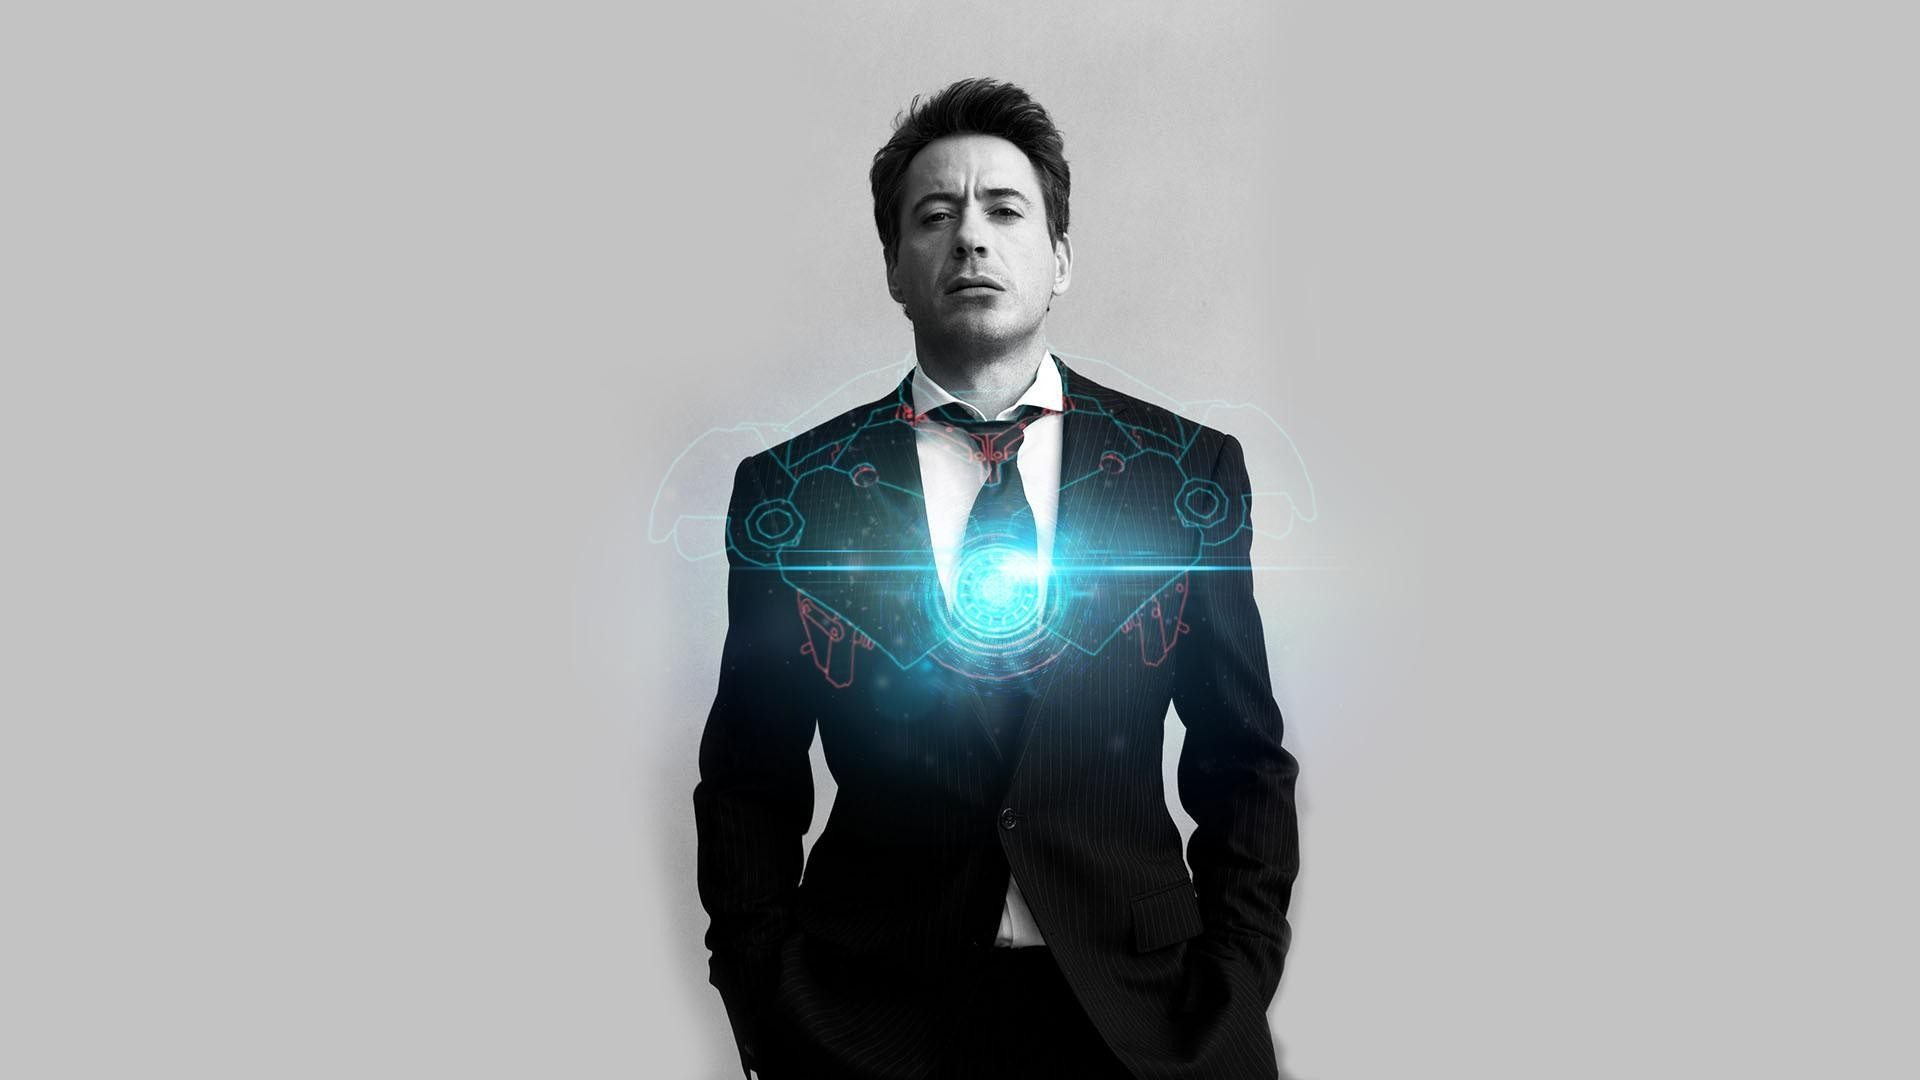 Robert Downey Jr. Just Revealed the Fate of 'Iron Man 4'